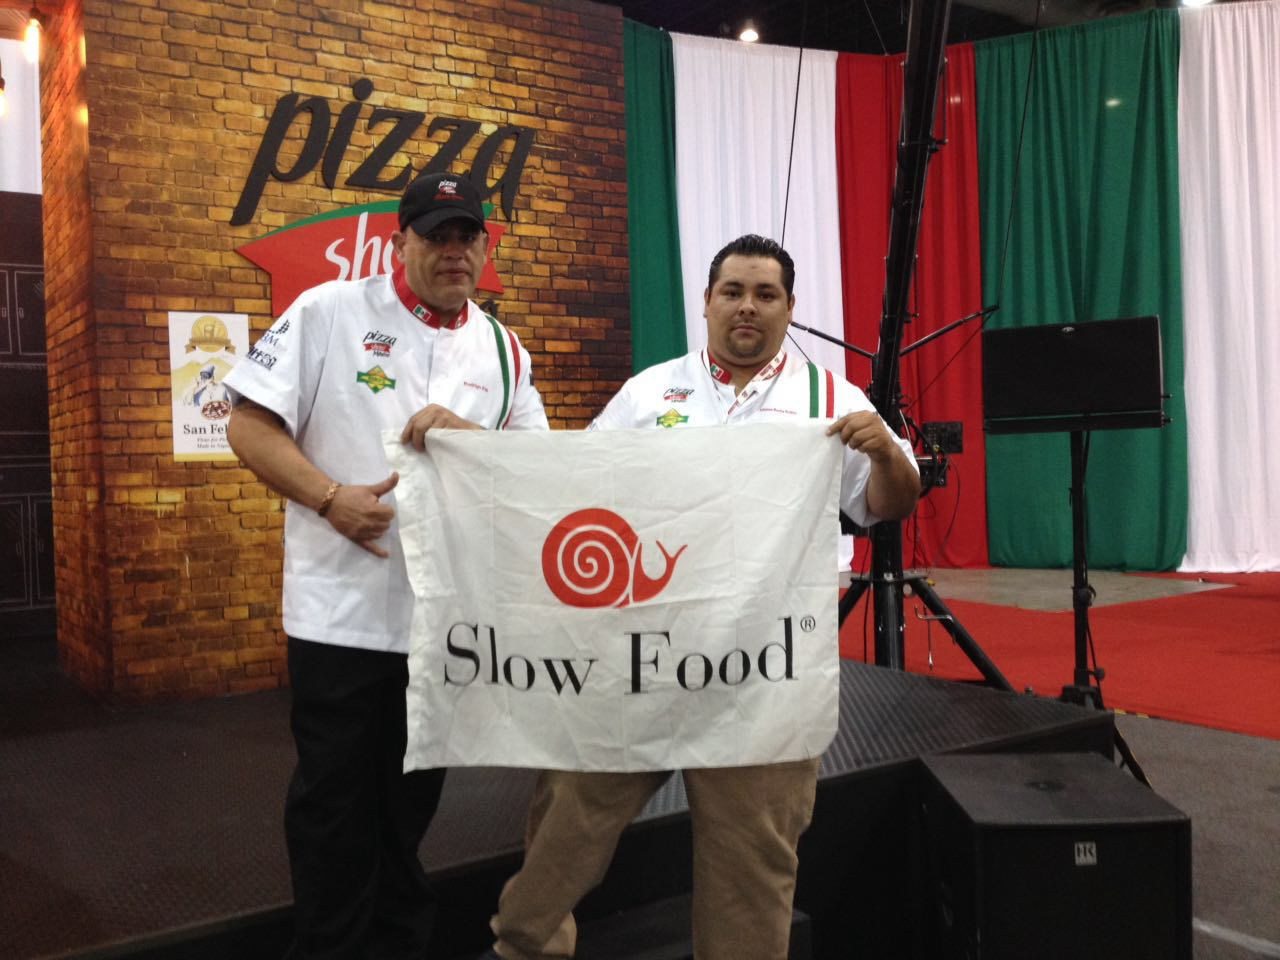 Slow Food Pizza Show